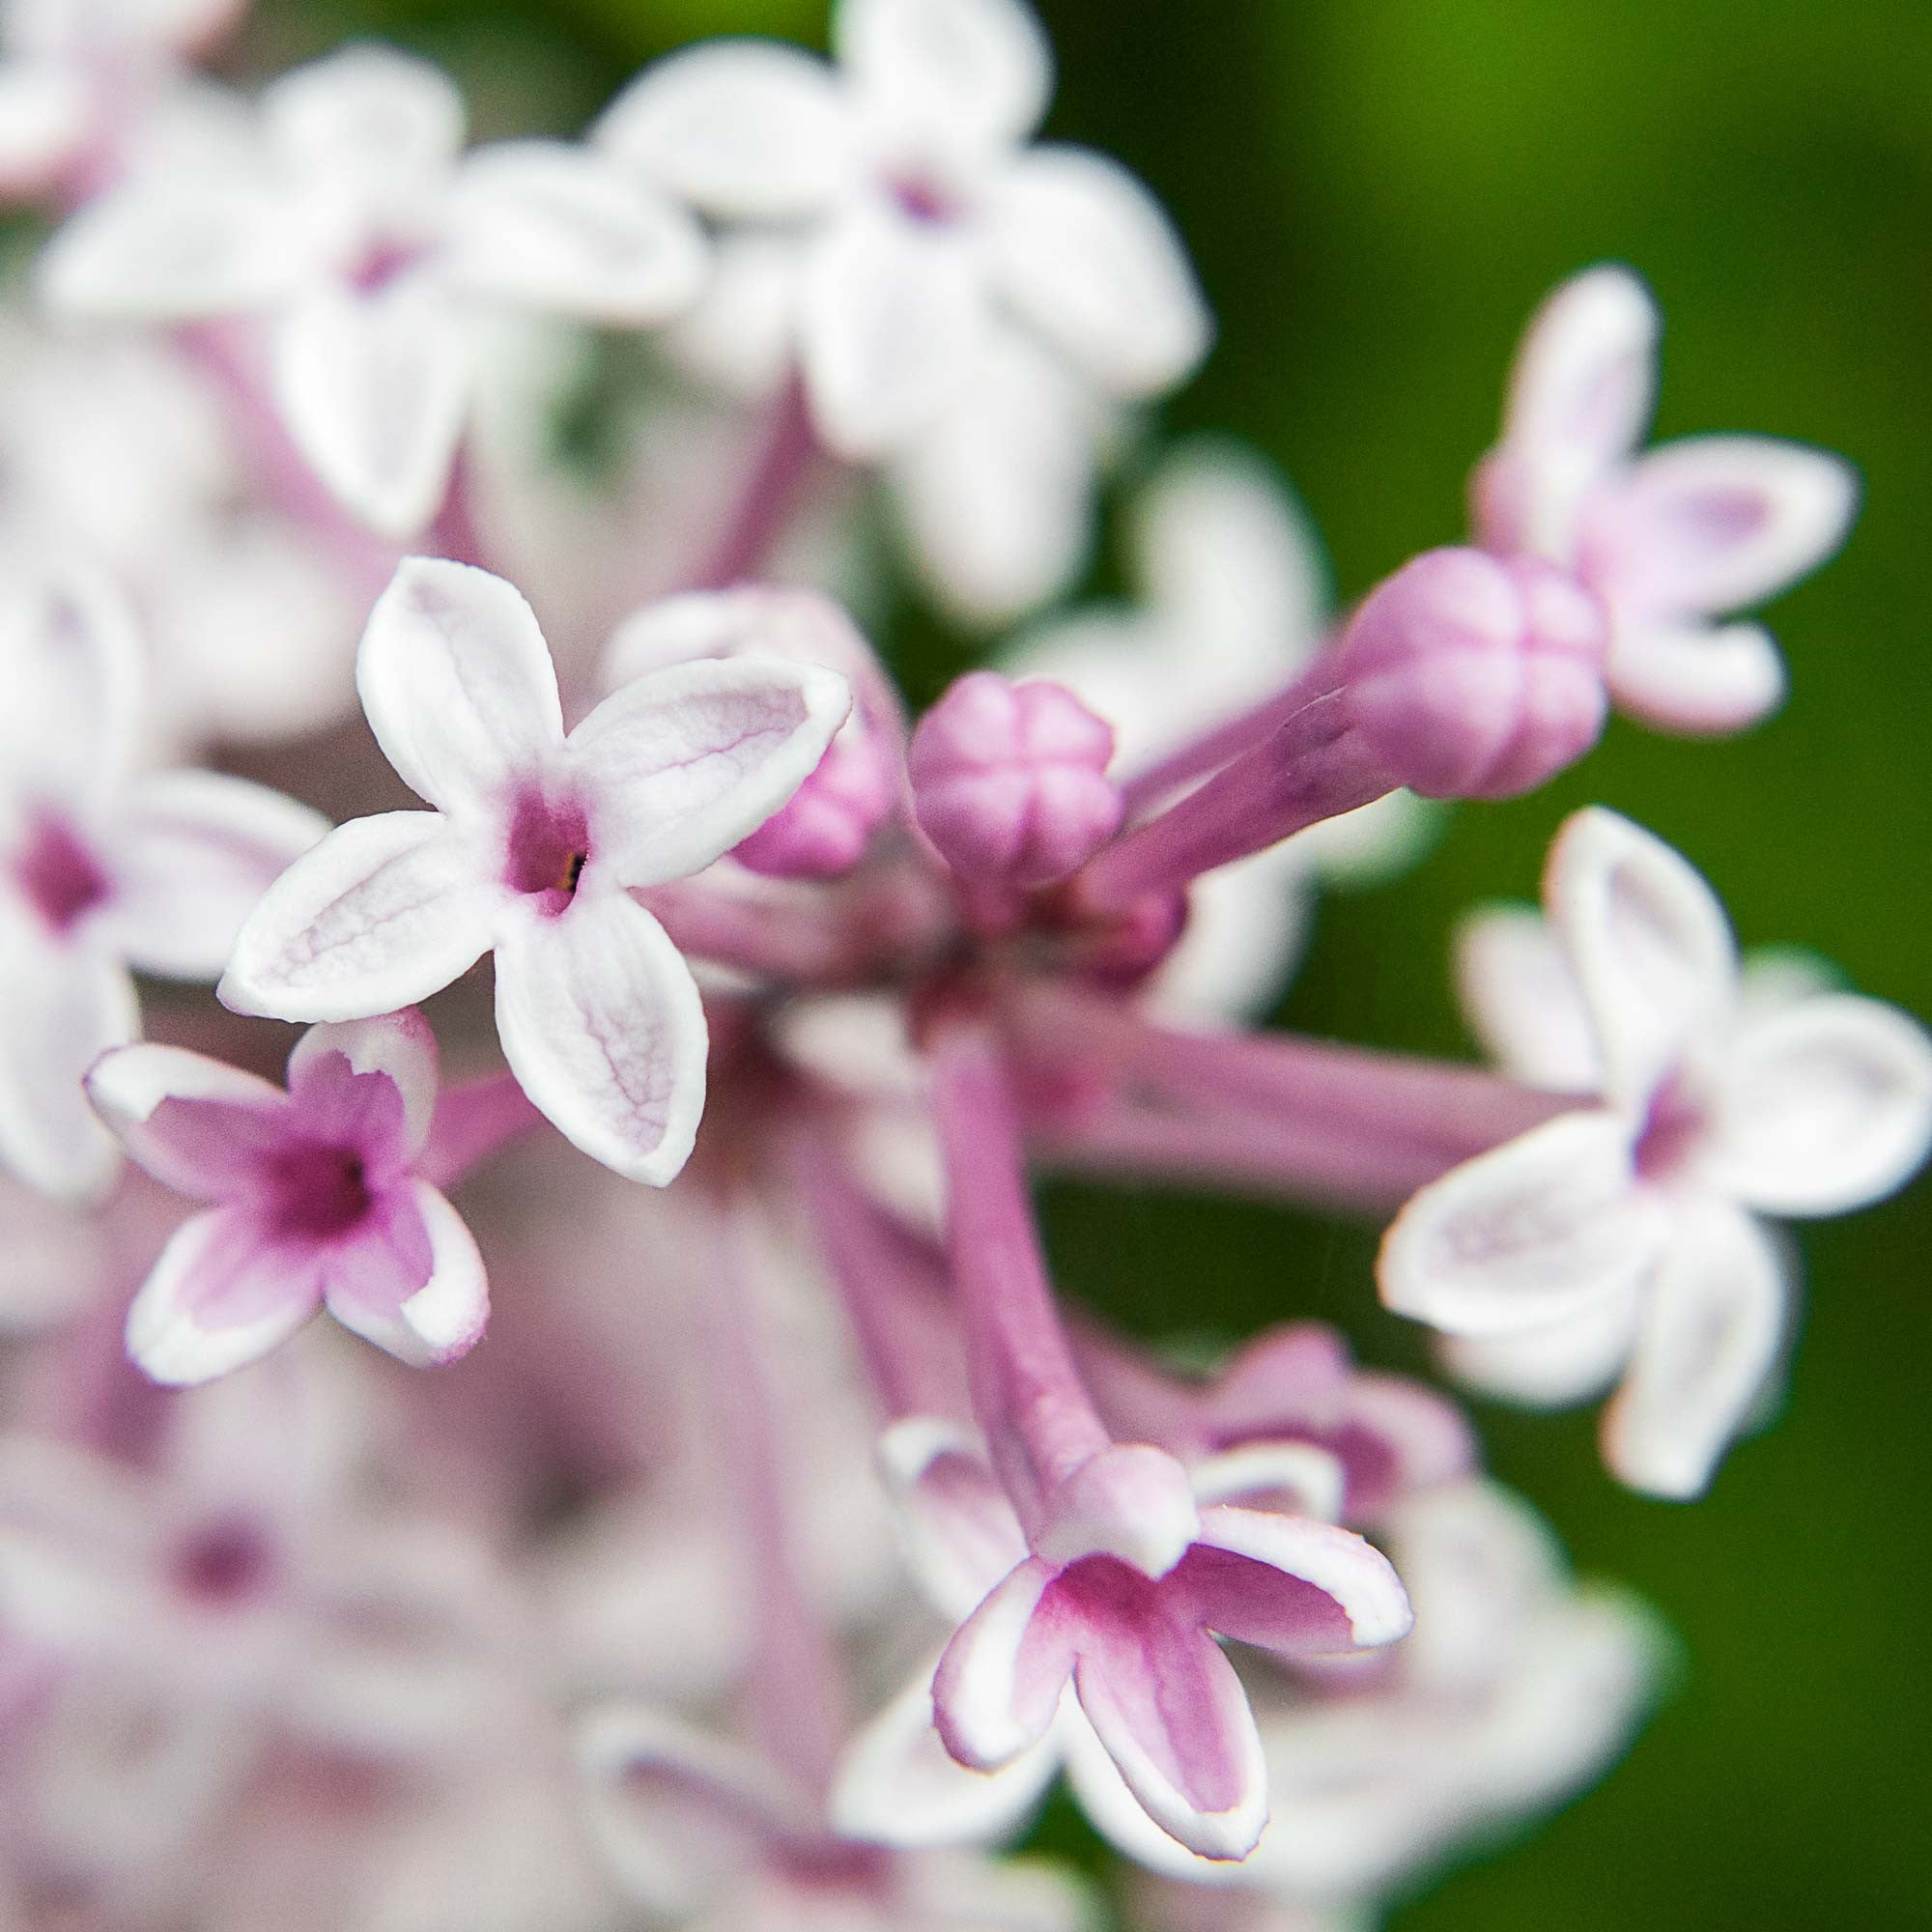 fragrant lilacs in bloom